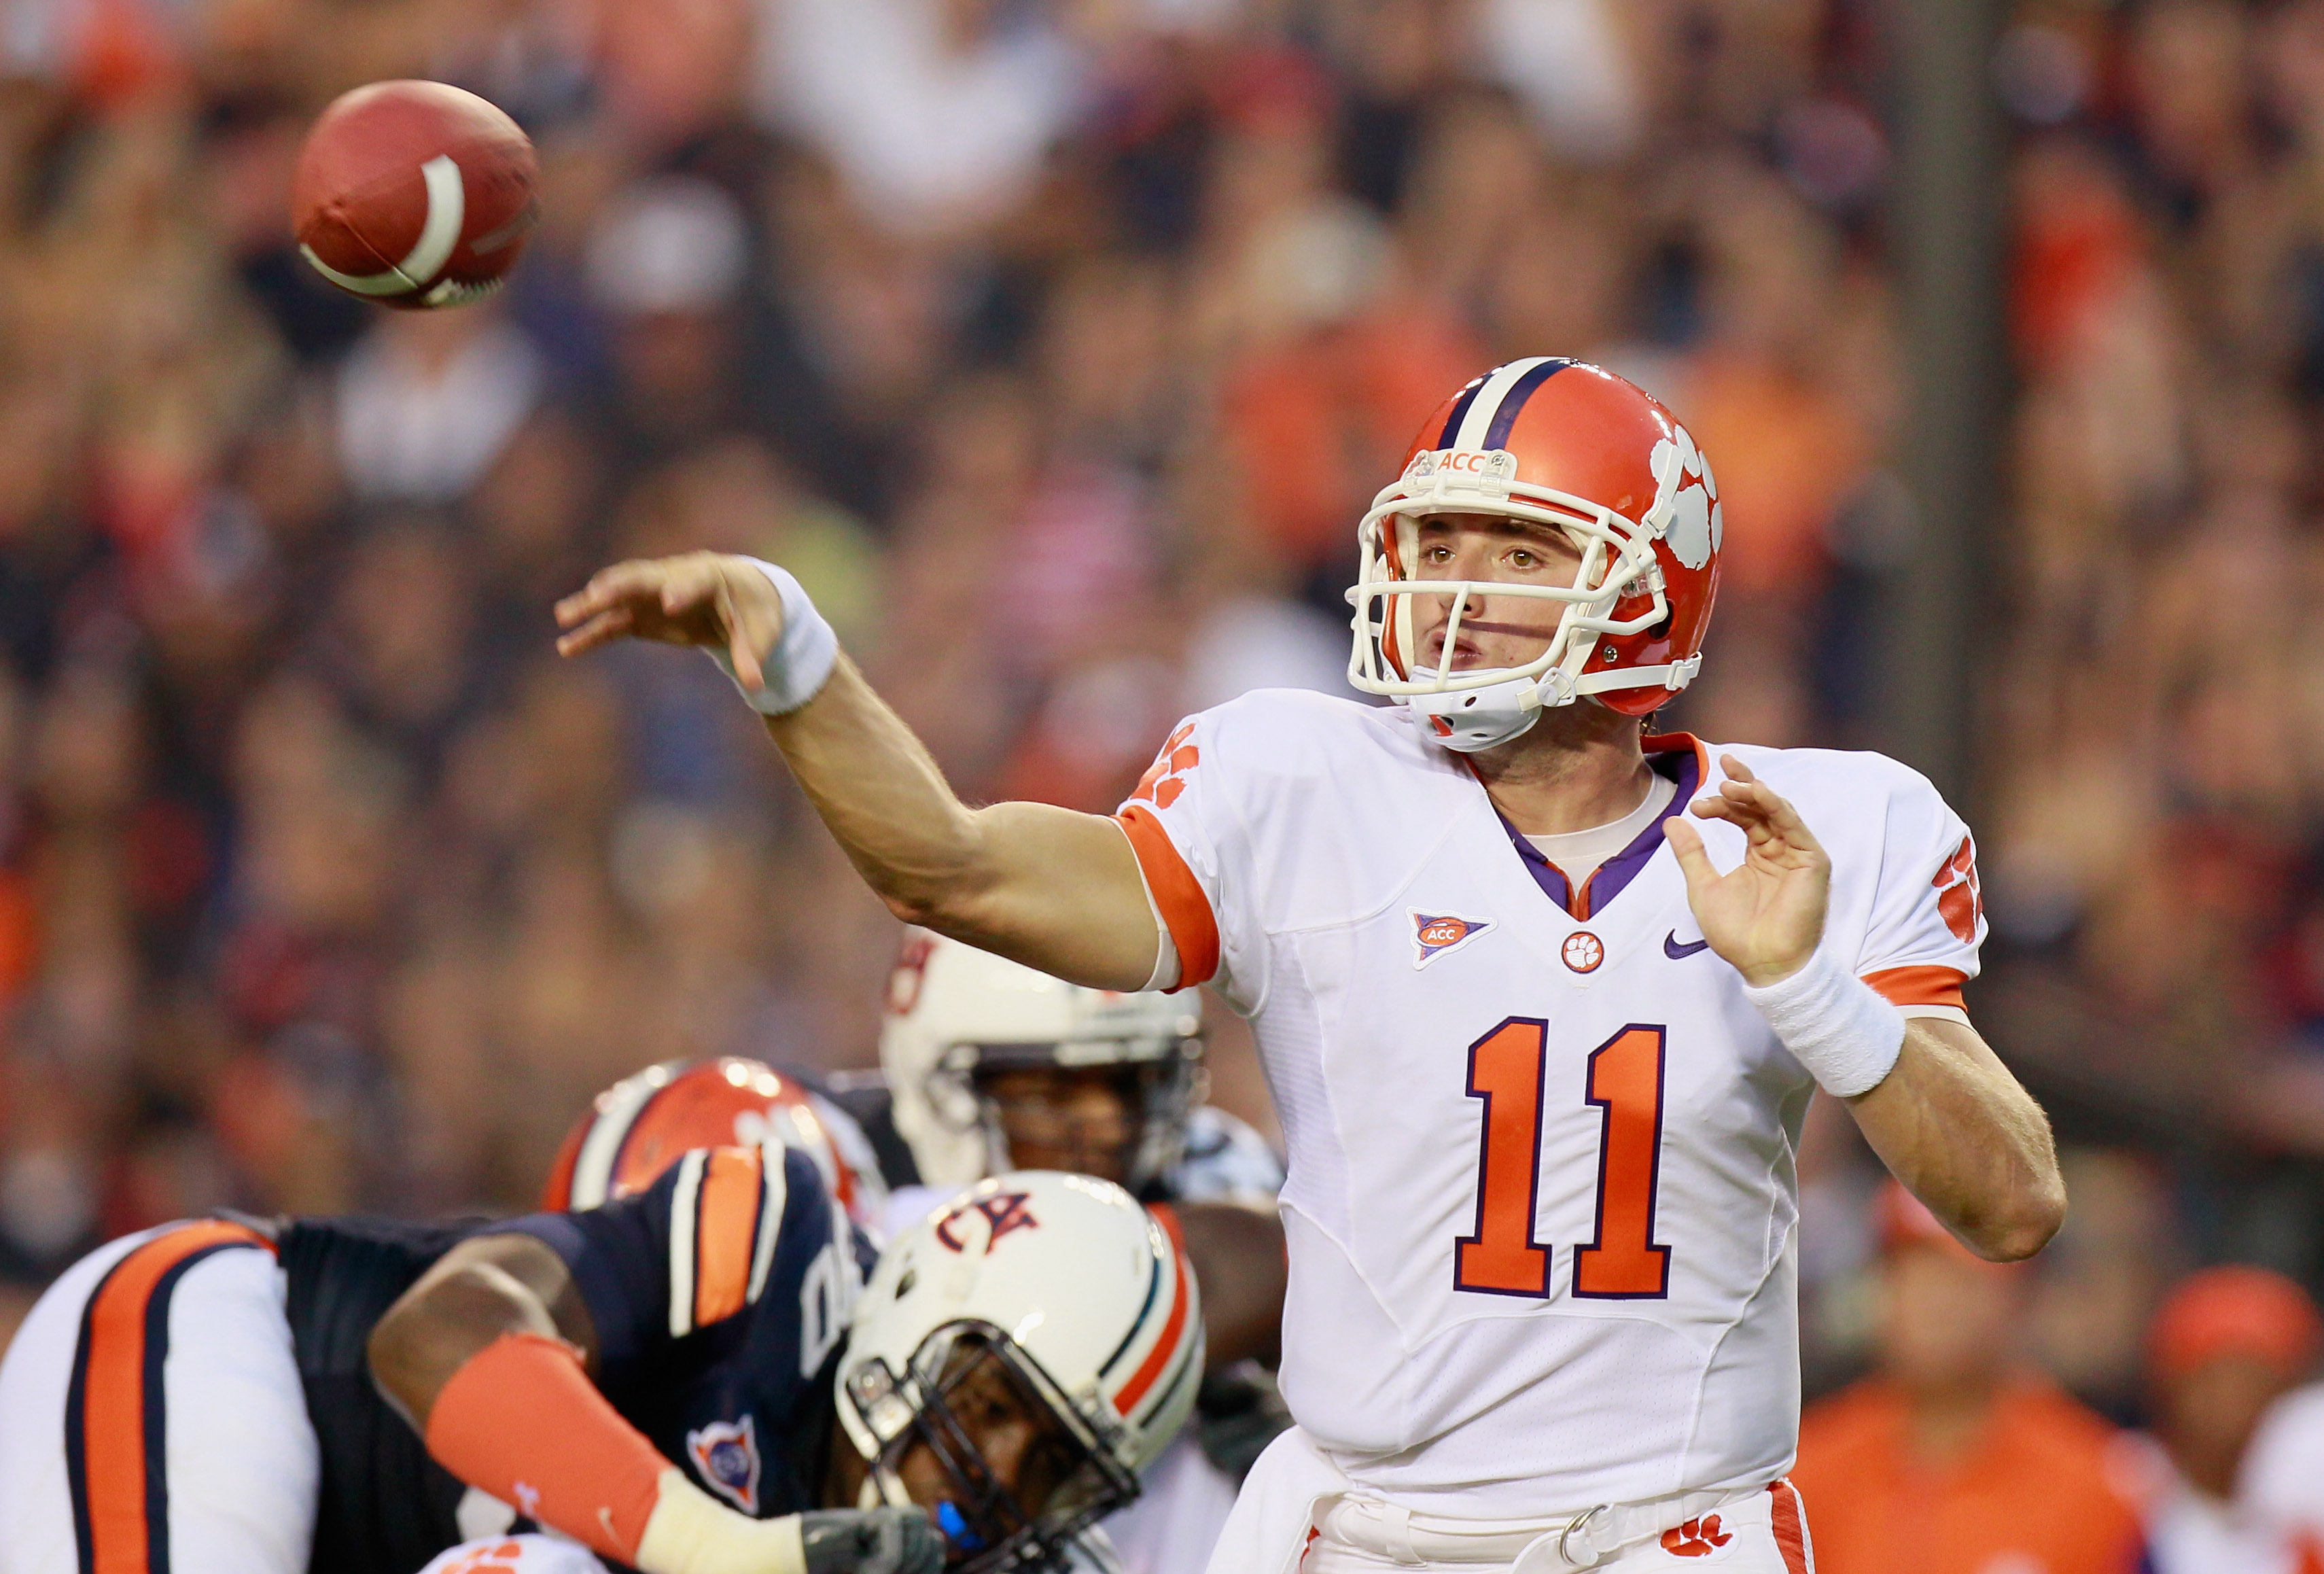 AUBURN, AL - SEPTEMBER 18:  Quarterback Kyle Parker #11 of the Clemson Tigers passes against the Auburn Tigers at Jordan-Hare Stadium on September 18, 2010 in Auburn, Alabama.  (Photo by Kevin C. Cox/Getty Images)